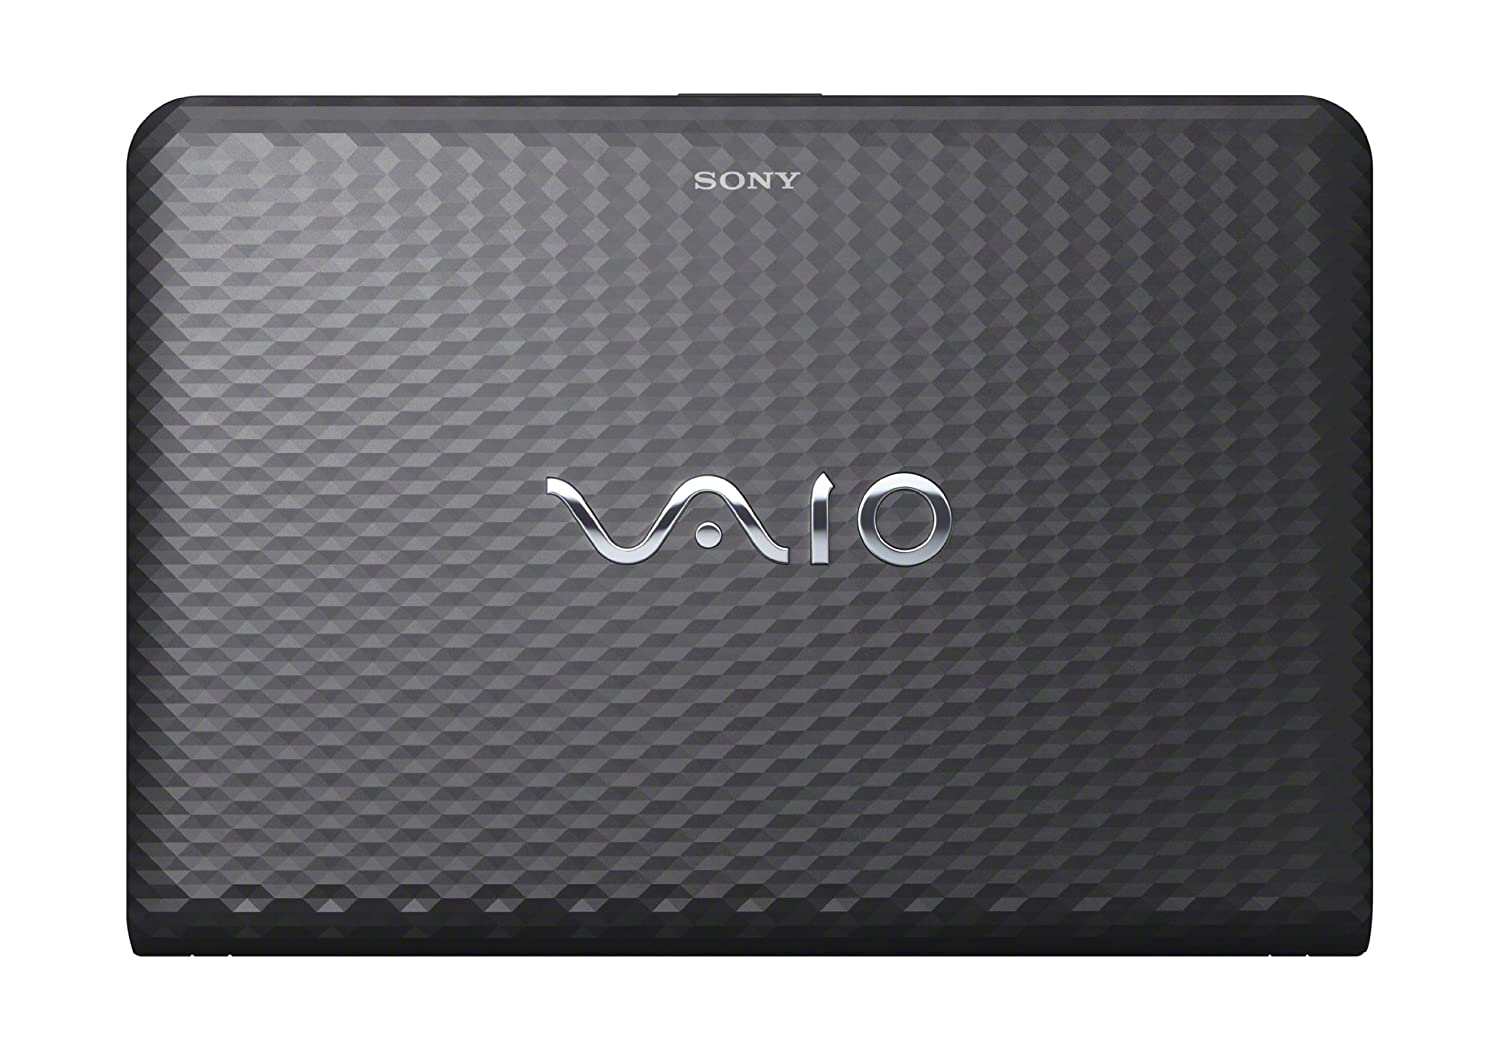 Sony Vaio VPCEG23FX/B Camera Windows 8